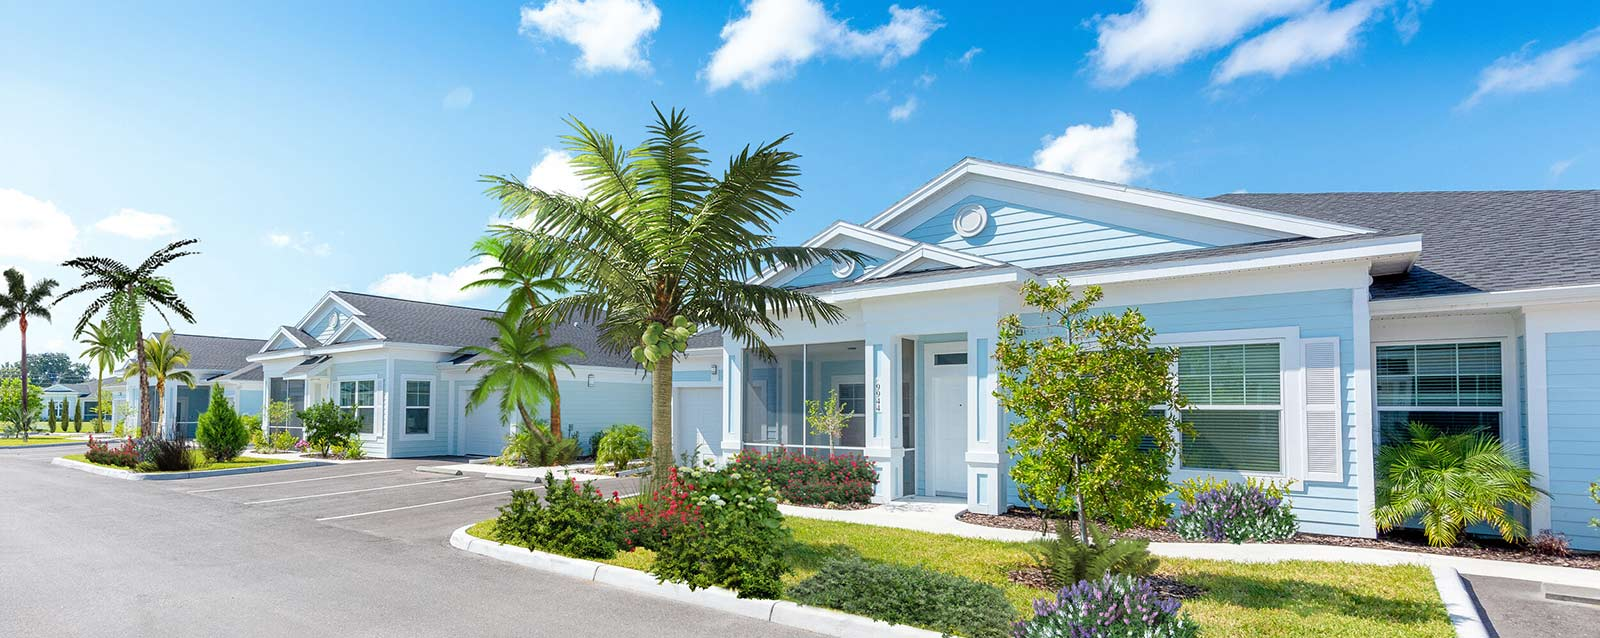 Floridian Villas - Photo of neighborhood located in Venice, Florida